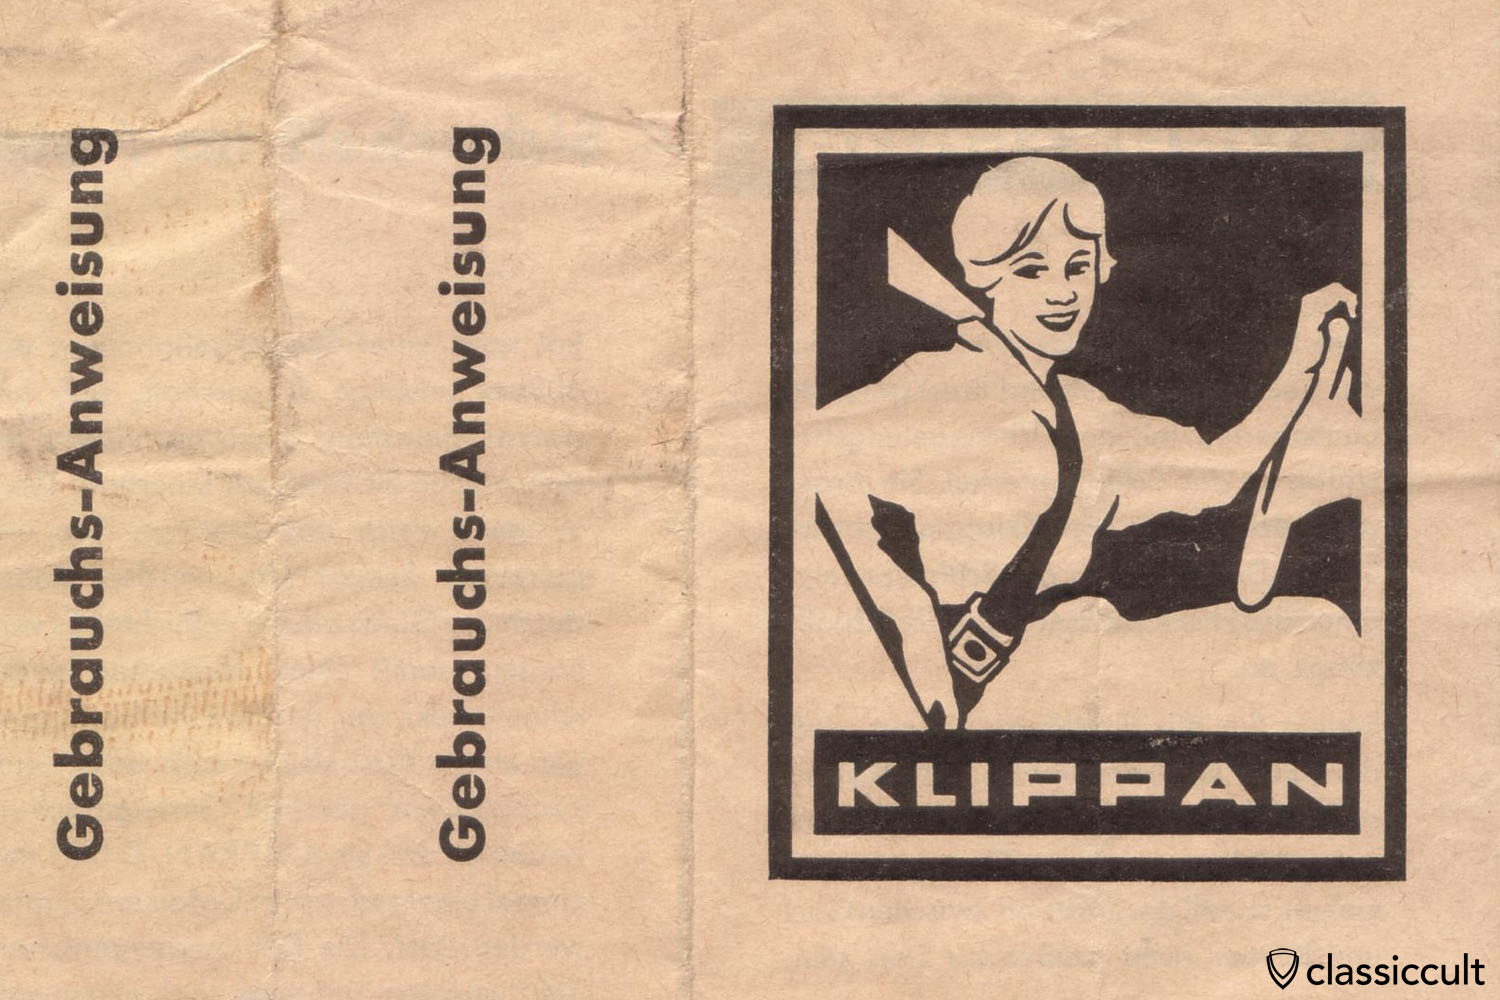 Klippan seat belt instruction 1960